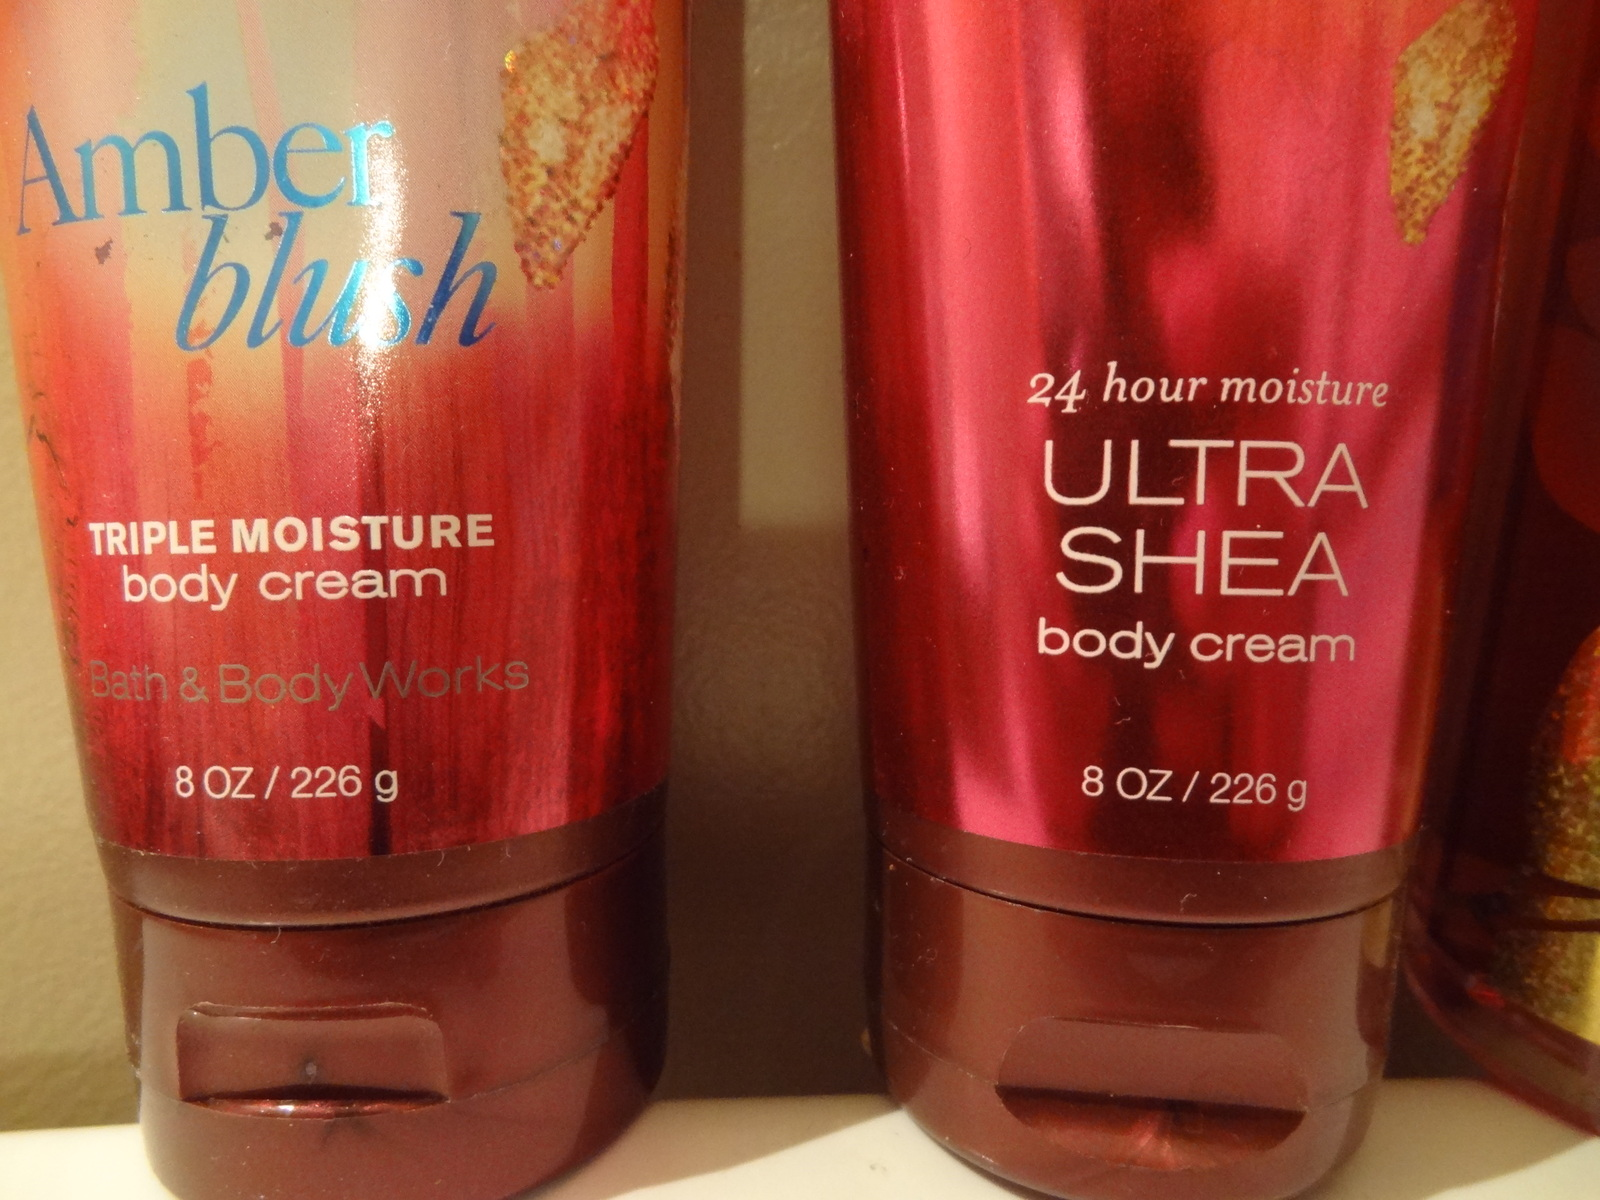 BATH & BODY WORKS SET OF 3 AMBER BLUSH  FRAGRANCE MIST BODY CREAM ULTRA SHEA NEW